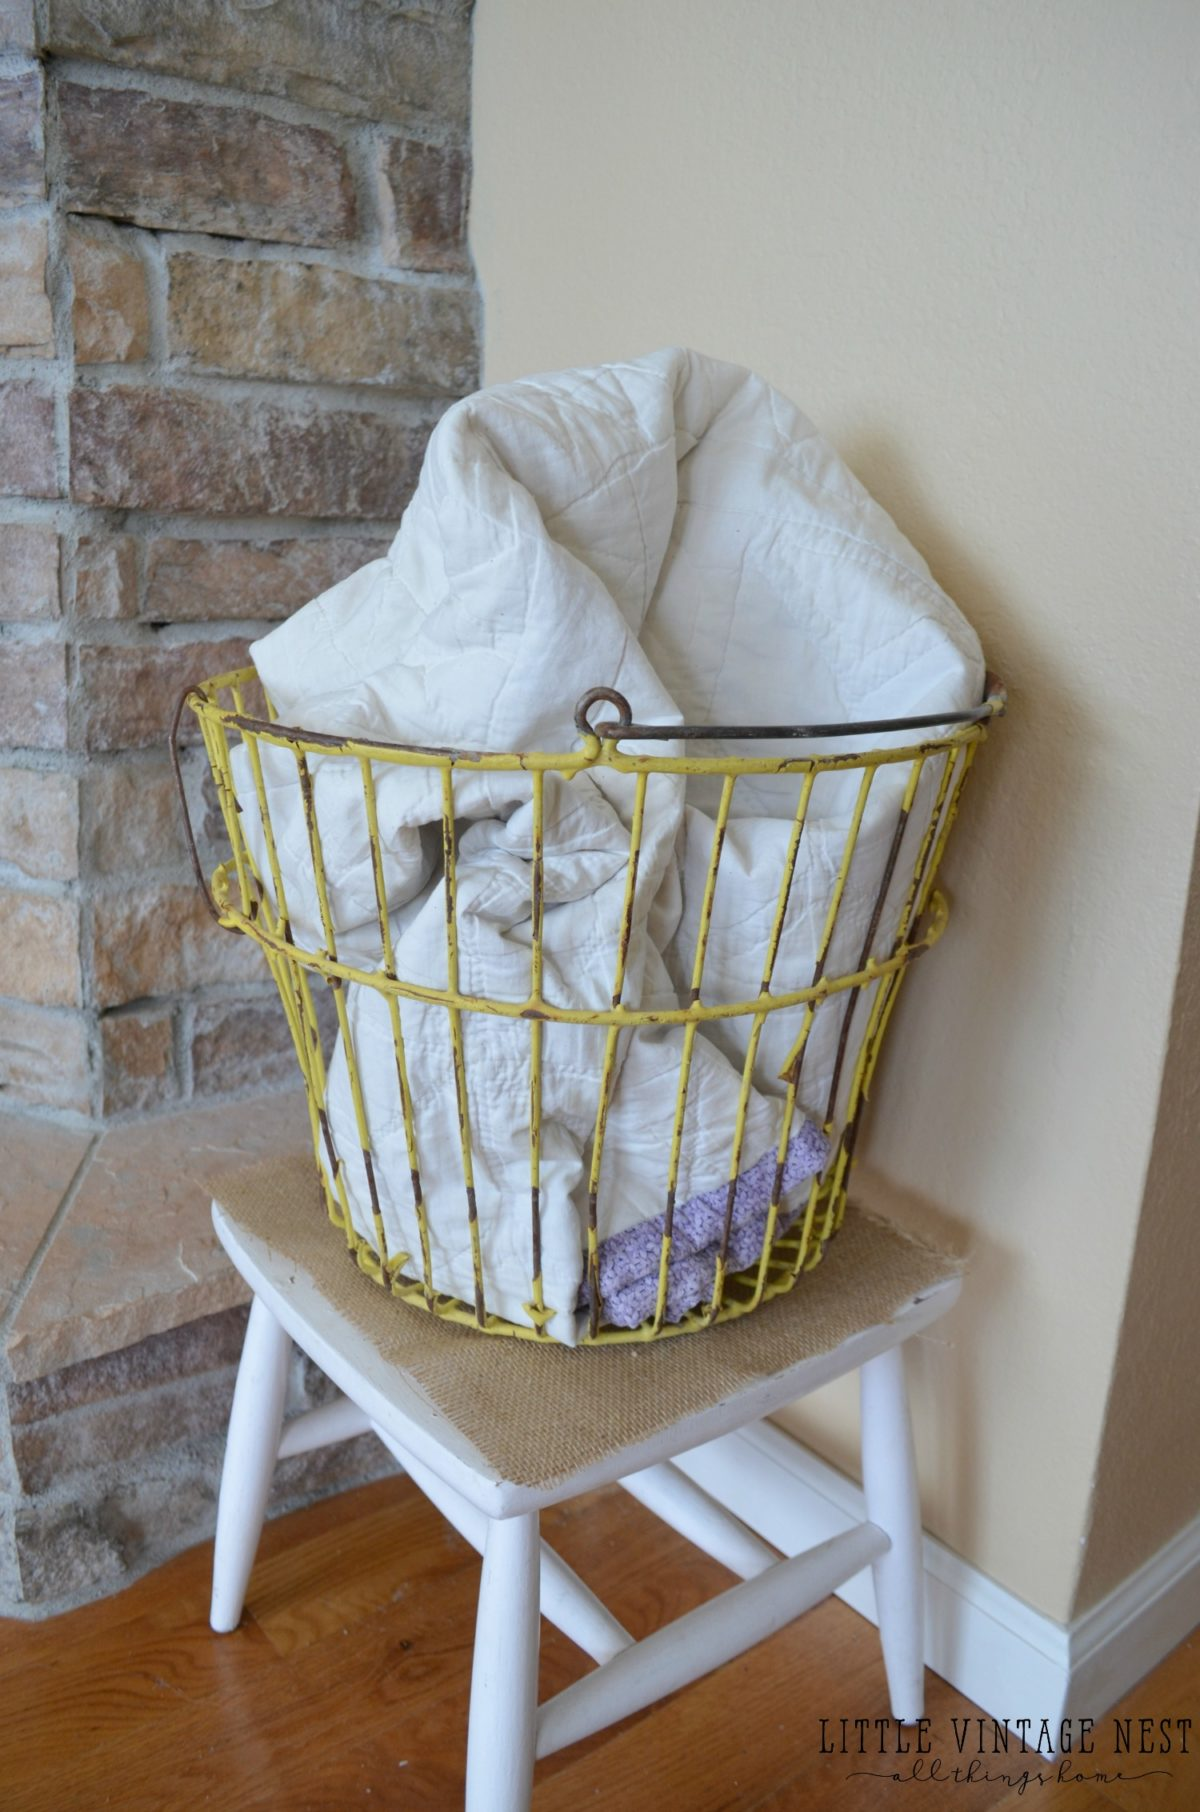 Farmhouse Style  Decorating with Wire Baskets   Little Vintage Nest Farmhouse Style  Decorate with Wire Baskets